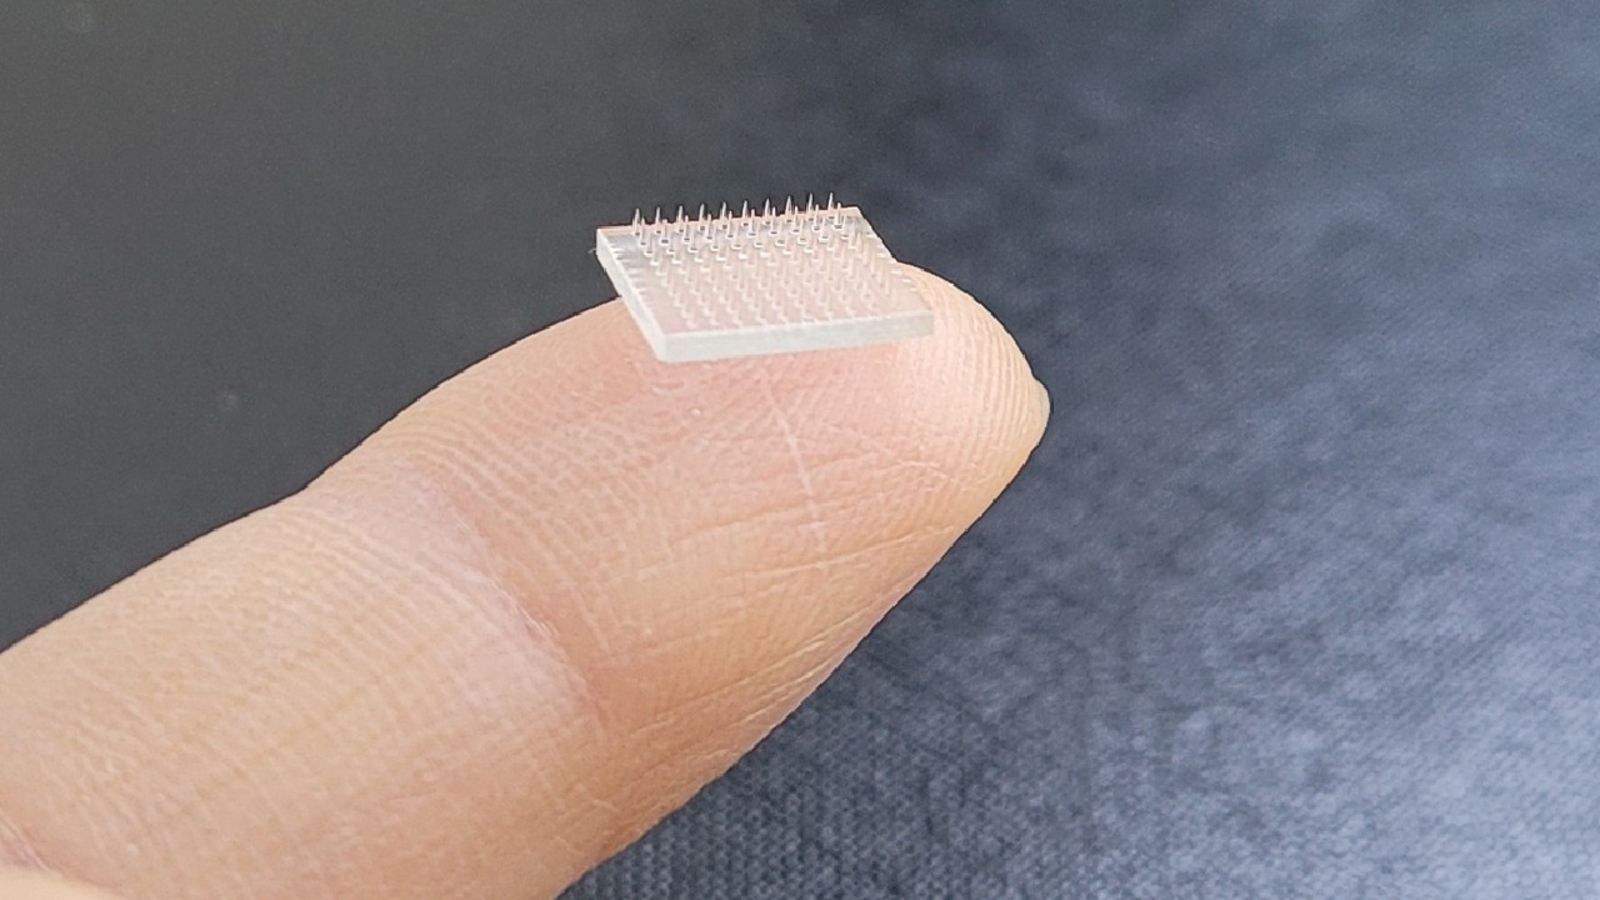 3-D printed vaccine patch pioneered at UNC could revolutionize how we distribute vaccinations